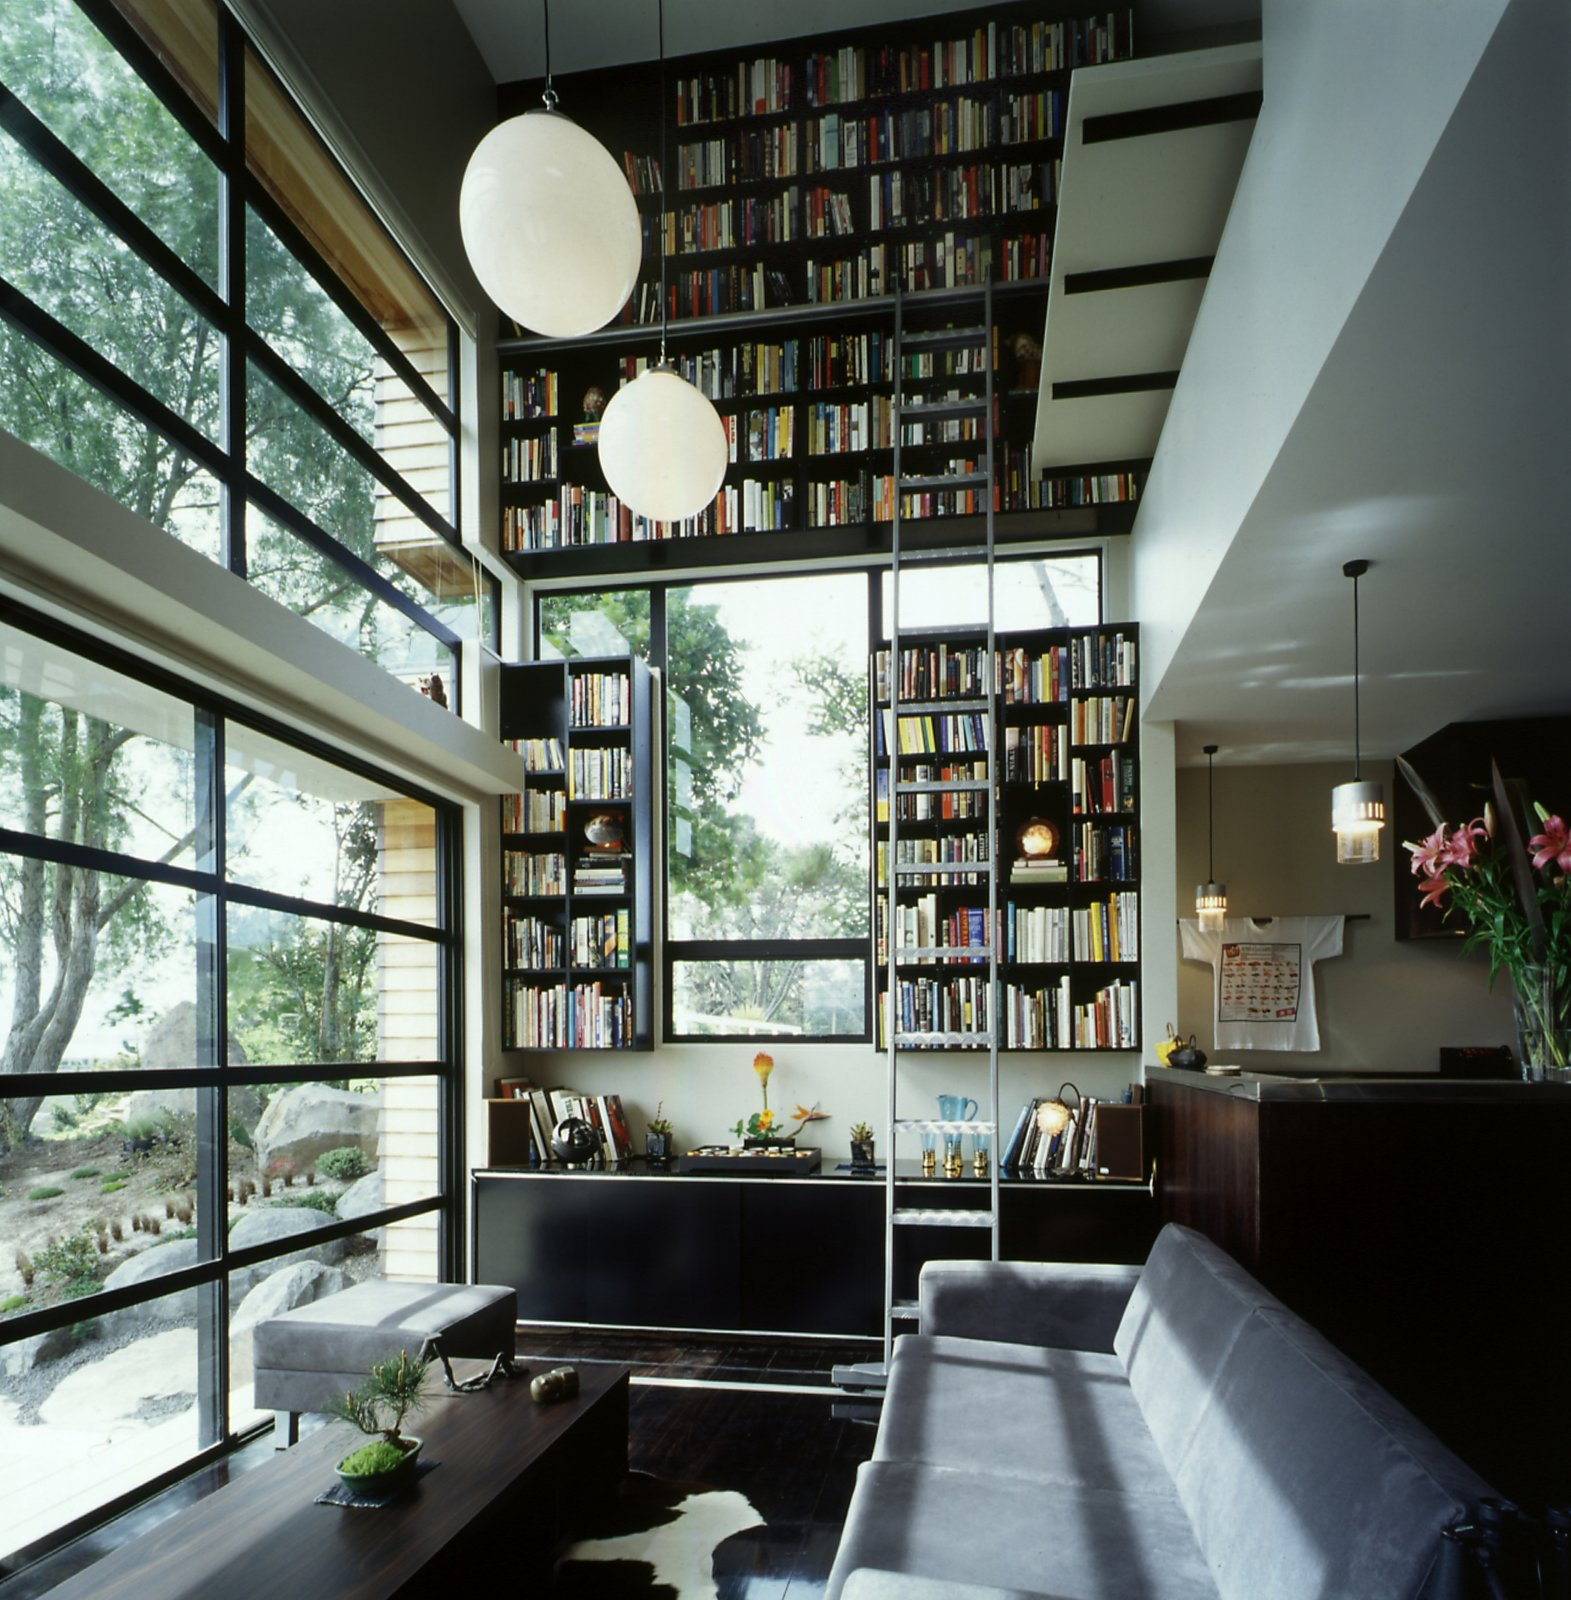 Hughes' collection of hundreds of books is stored on a vertiginous two story bookcase, which takes up the whole of the northern wall of the living room. It's an ingenious solution to the small-space dwelling that draws the eye up, adding texture and interest to the room without taking up floor space.